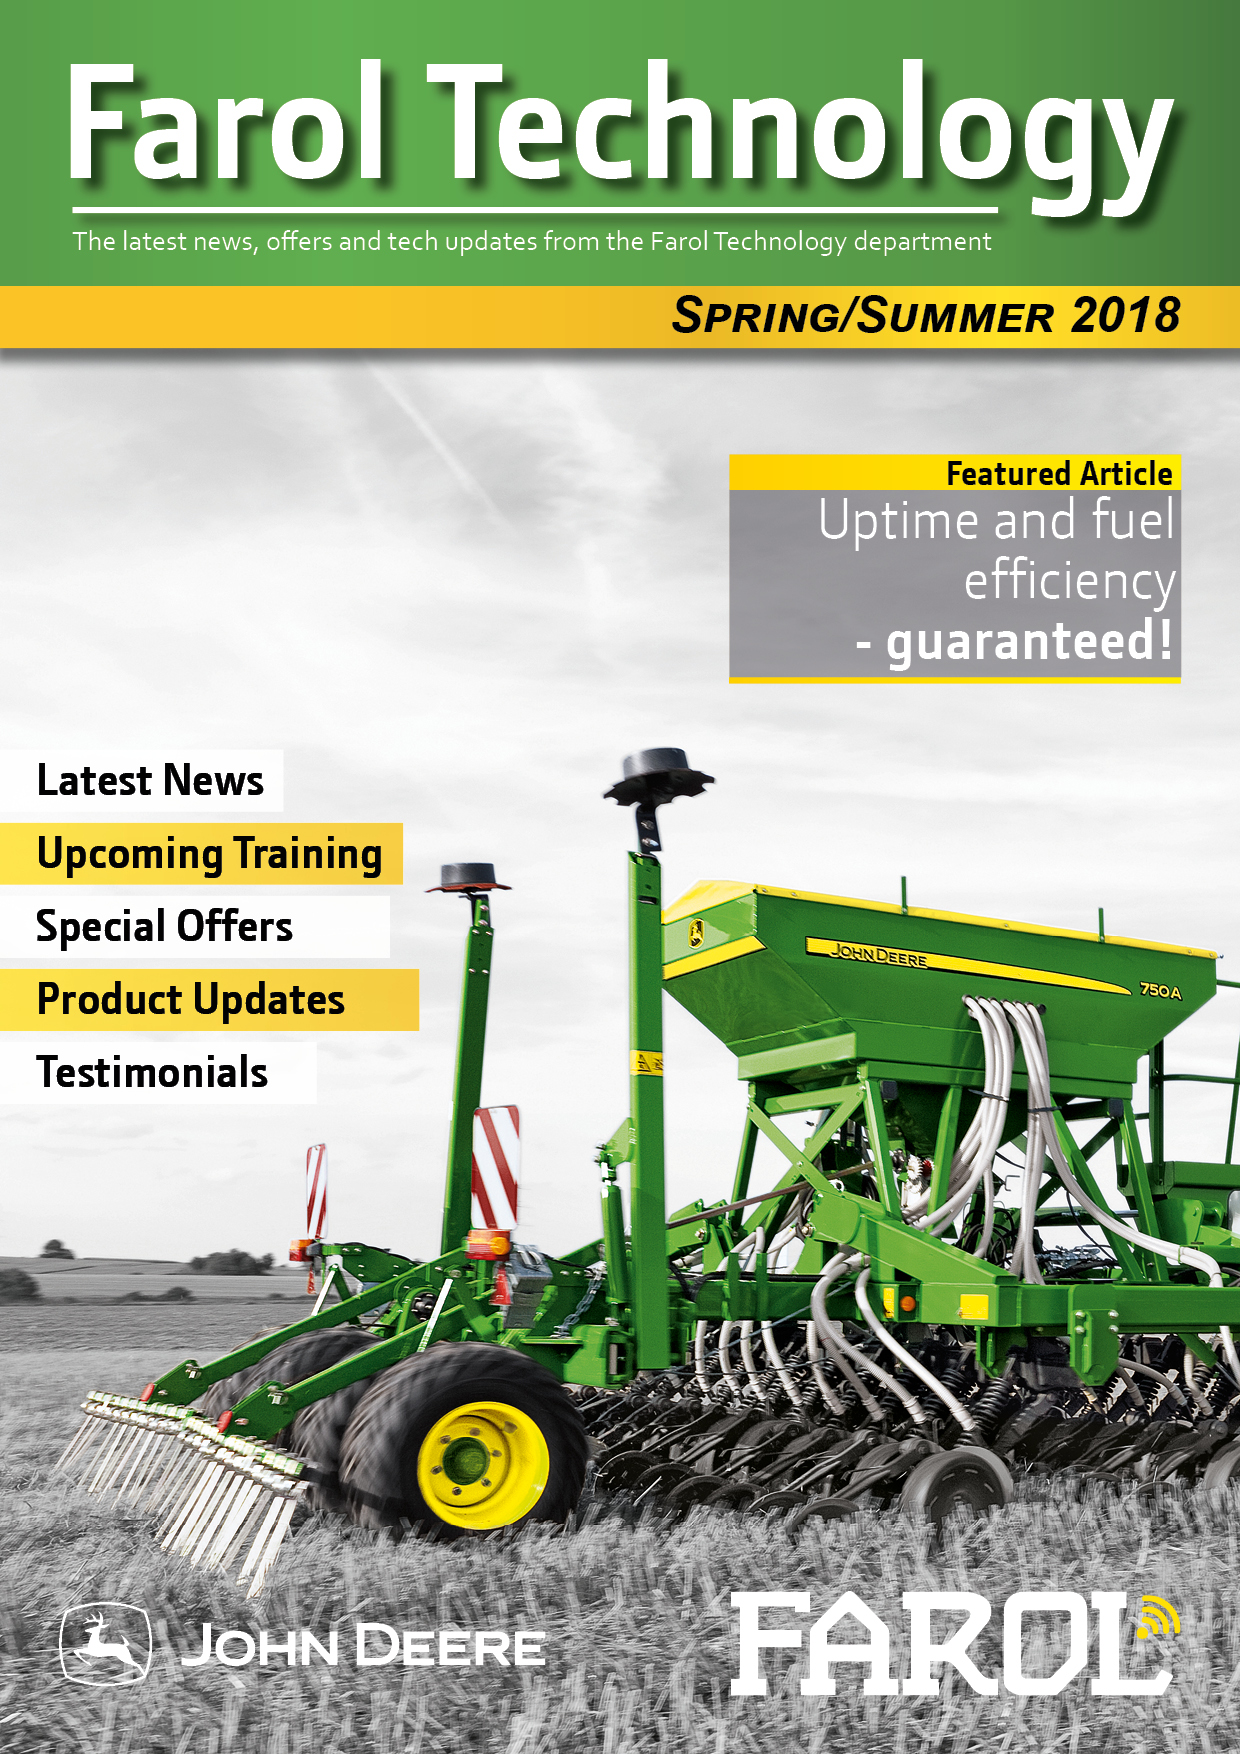 Farol Technology Magazine - Spring/Summer 2018